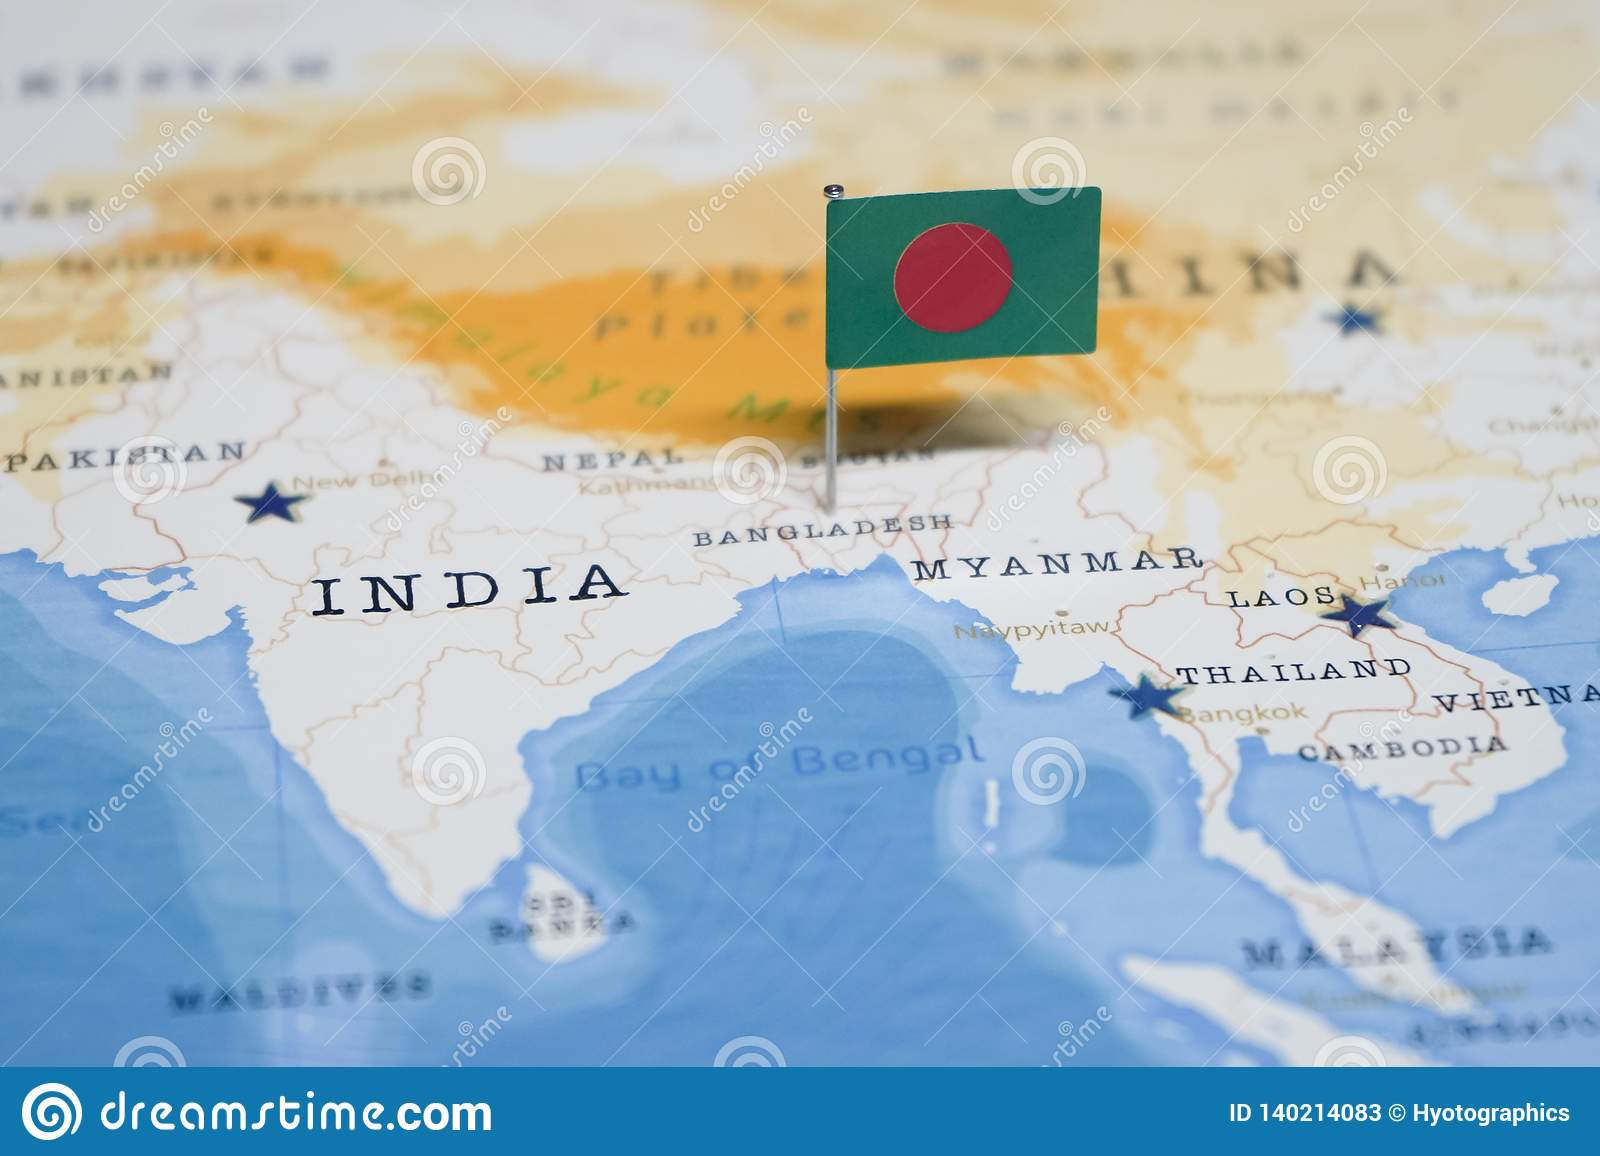 Picture of: 244 Bangladesh Map Photos Free Royalty Free Stock Photos From Dreamstime